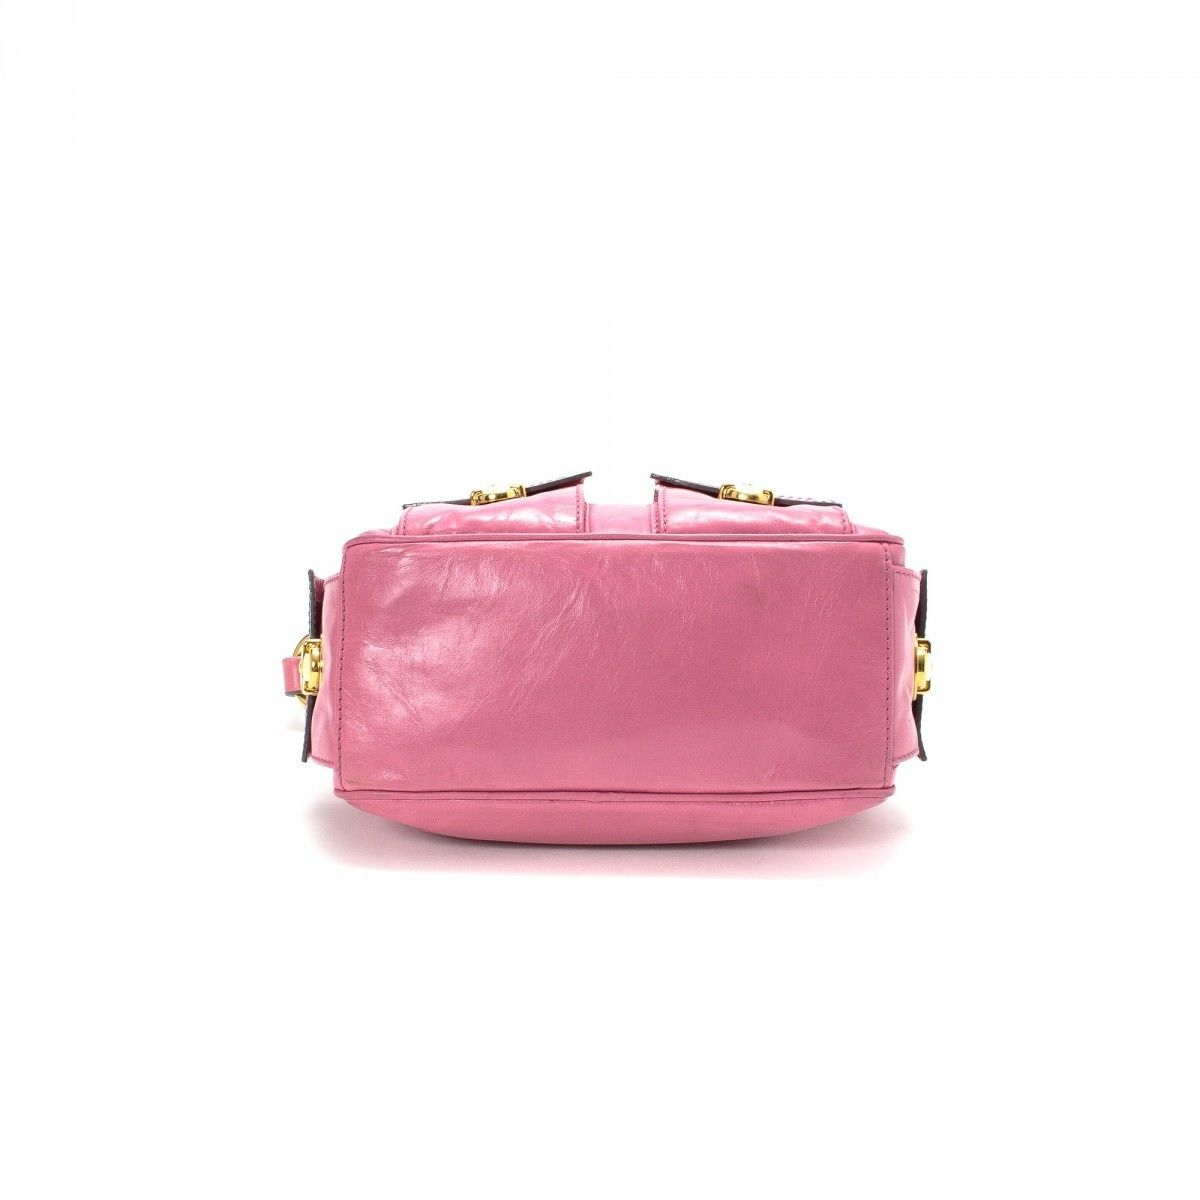 8e15cee599e Marc Jacobs Shoulder Bag. LXRandCo guarantees this is an authentic vintage  Marc Jacobs Blake ...